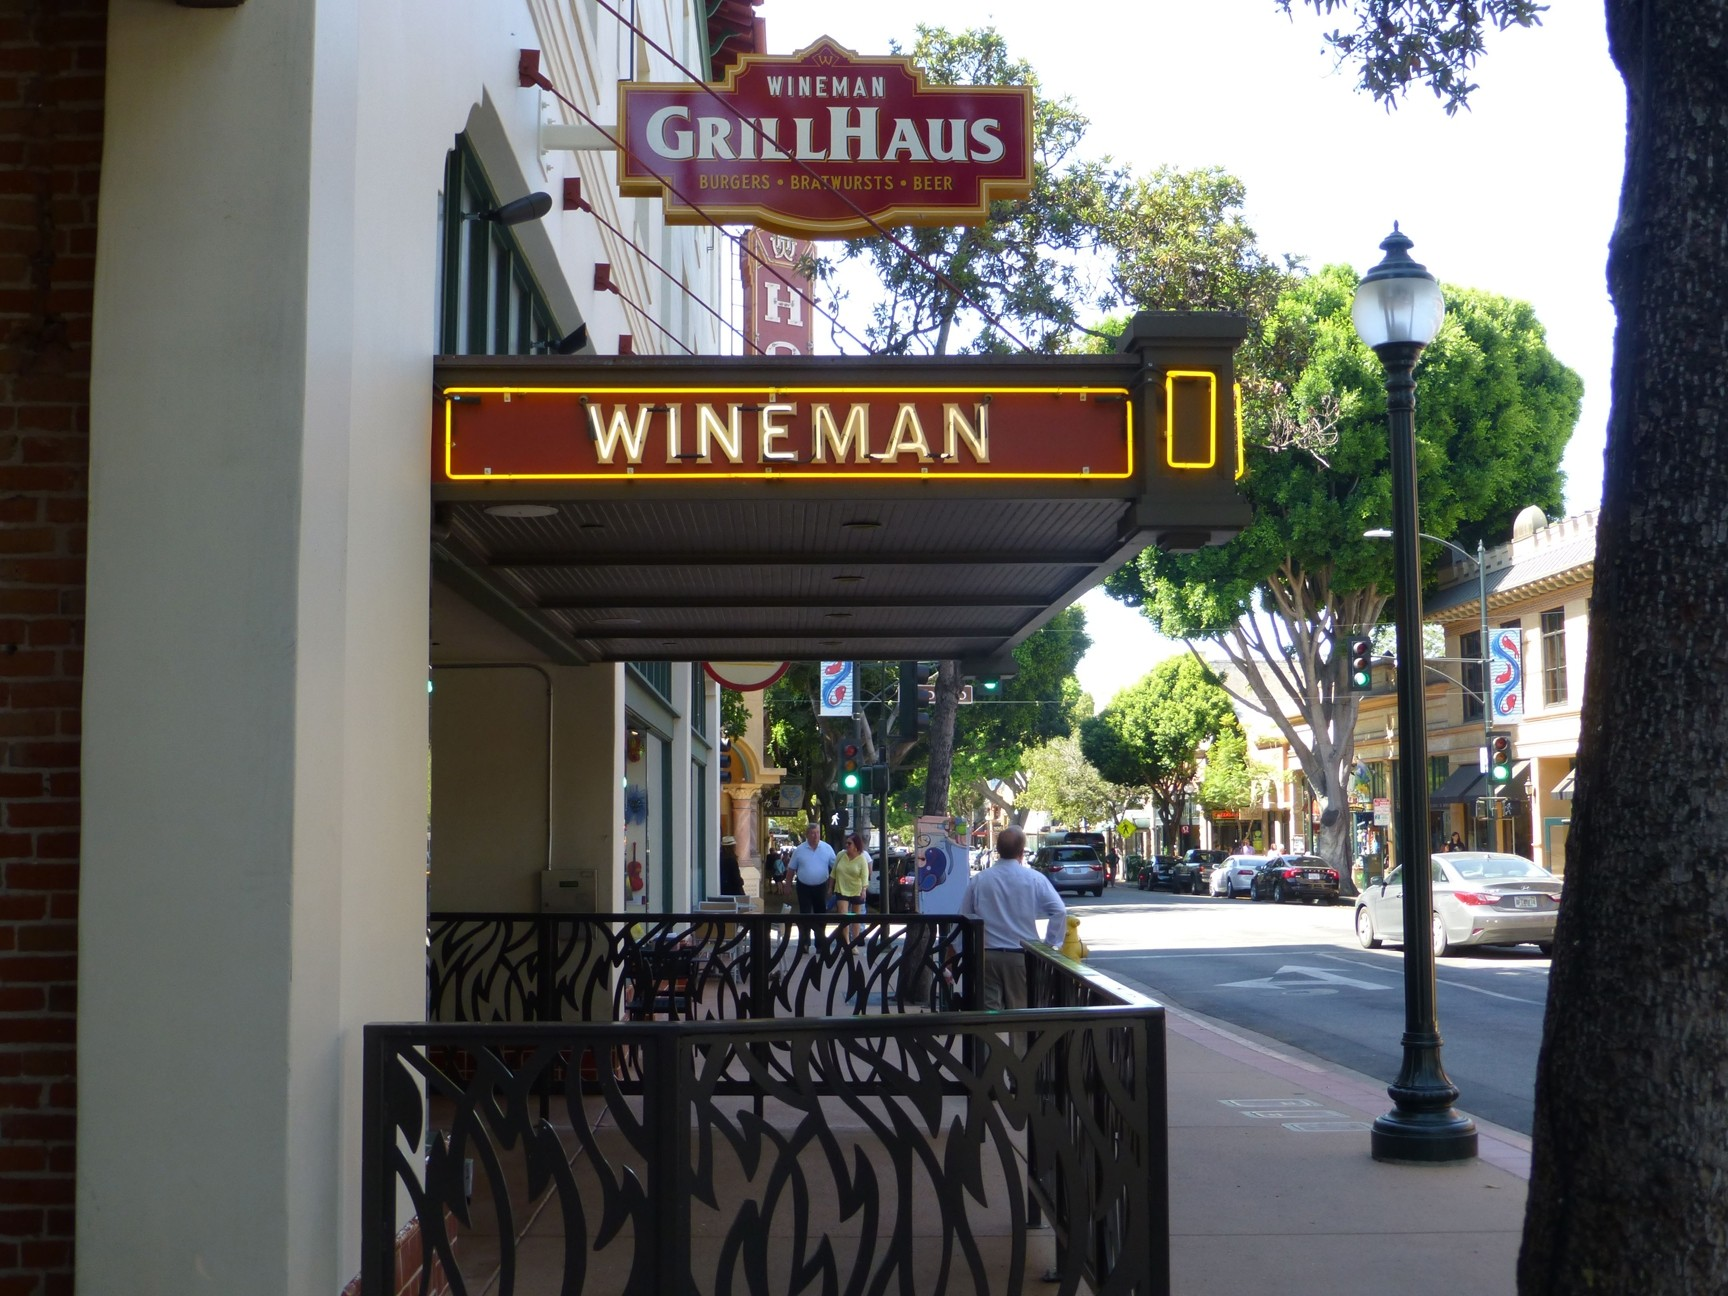 Local Restaurant Wineman Grillhaus Serves Up A Fusion Of German And